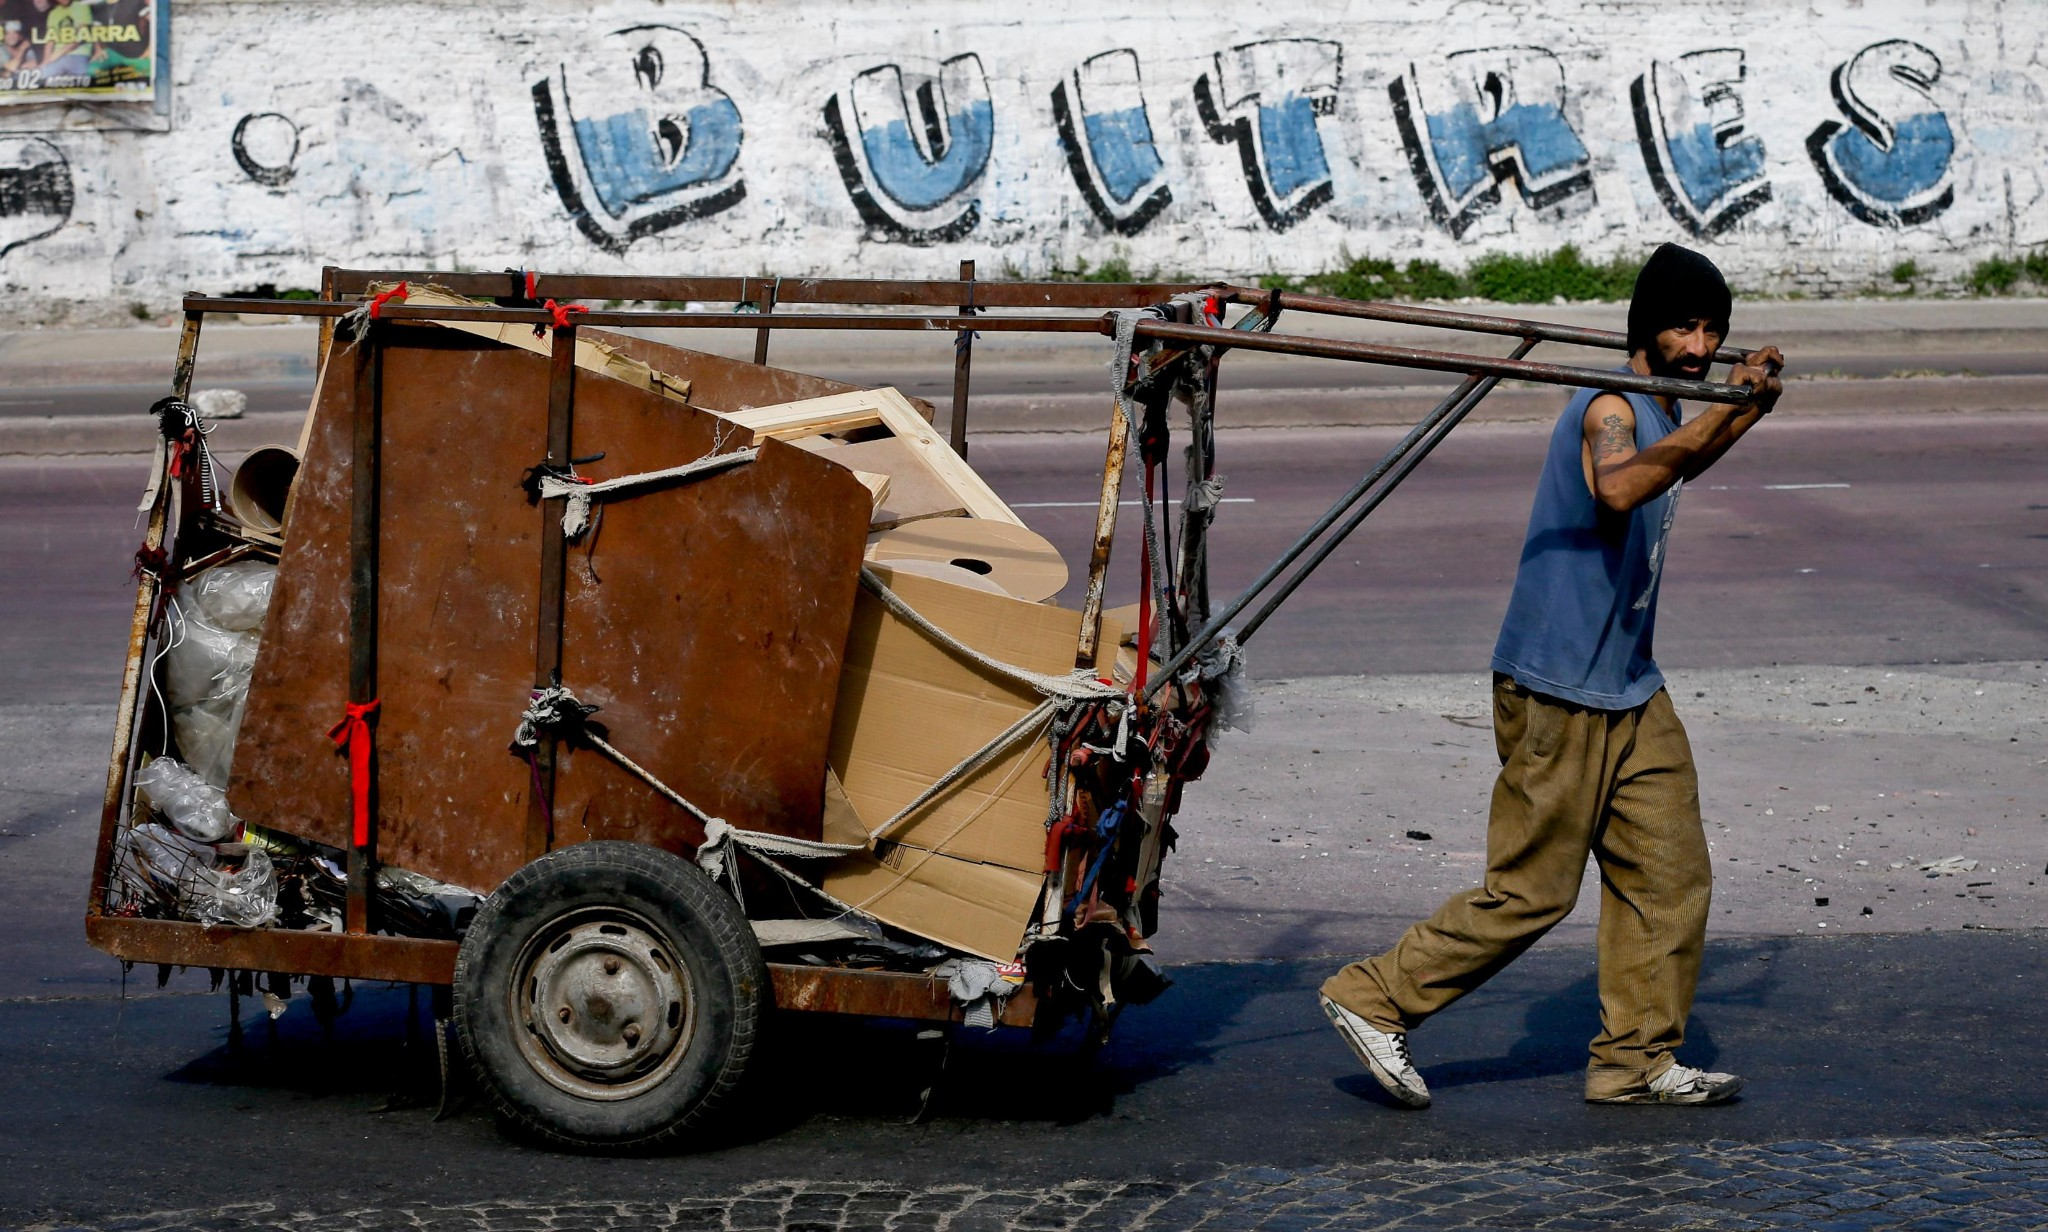 The new generation of Buenos Aires trash pickers reenergizing recycling in the capital